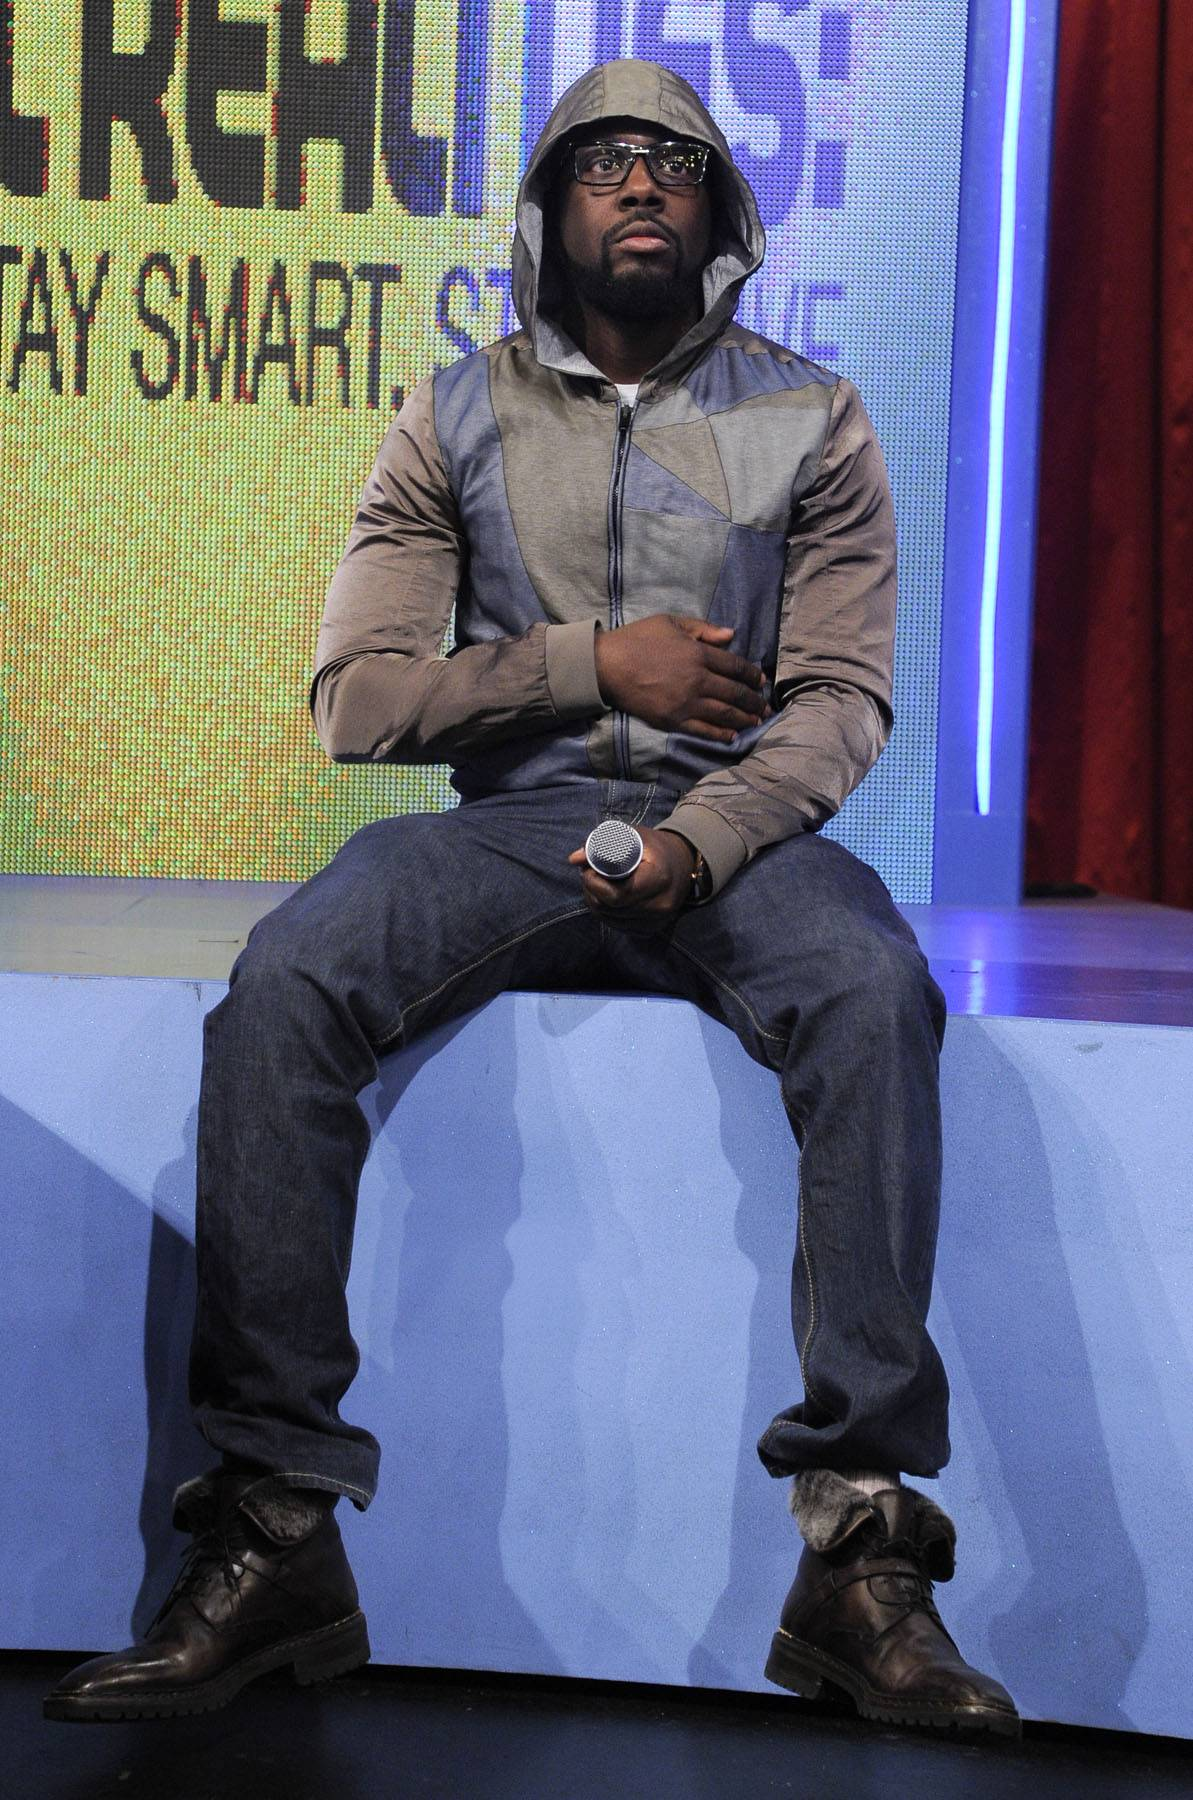 Wyclef - Wyclef said that since you were born Black, you willautomatically be profiled racially and encouraged the audience to learn their state laws to stay safe.(Photo: John Ricard/BET)